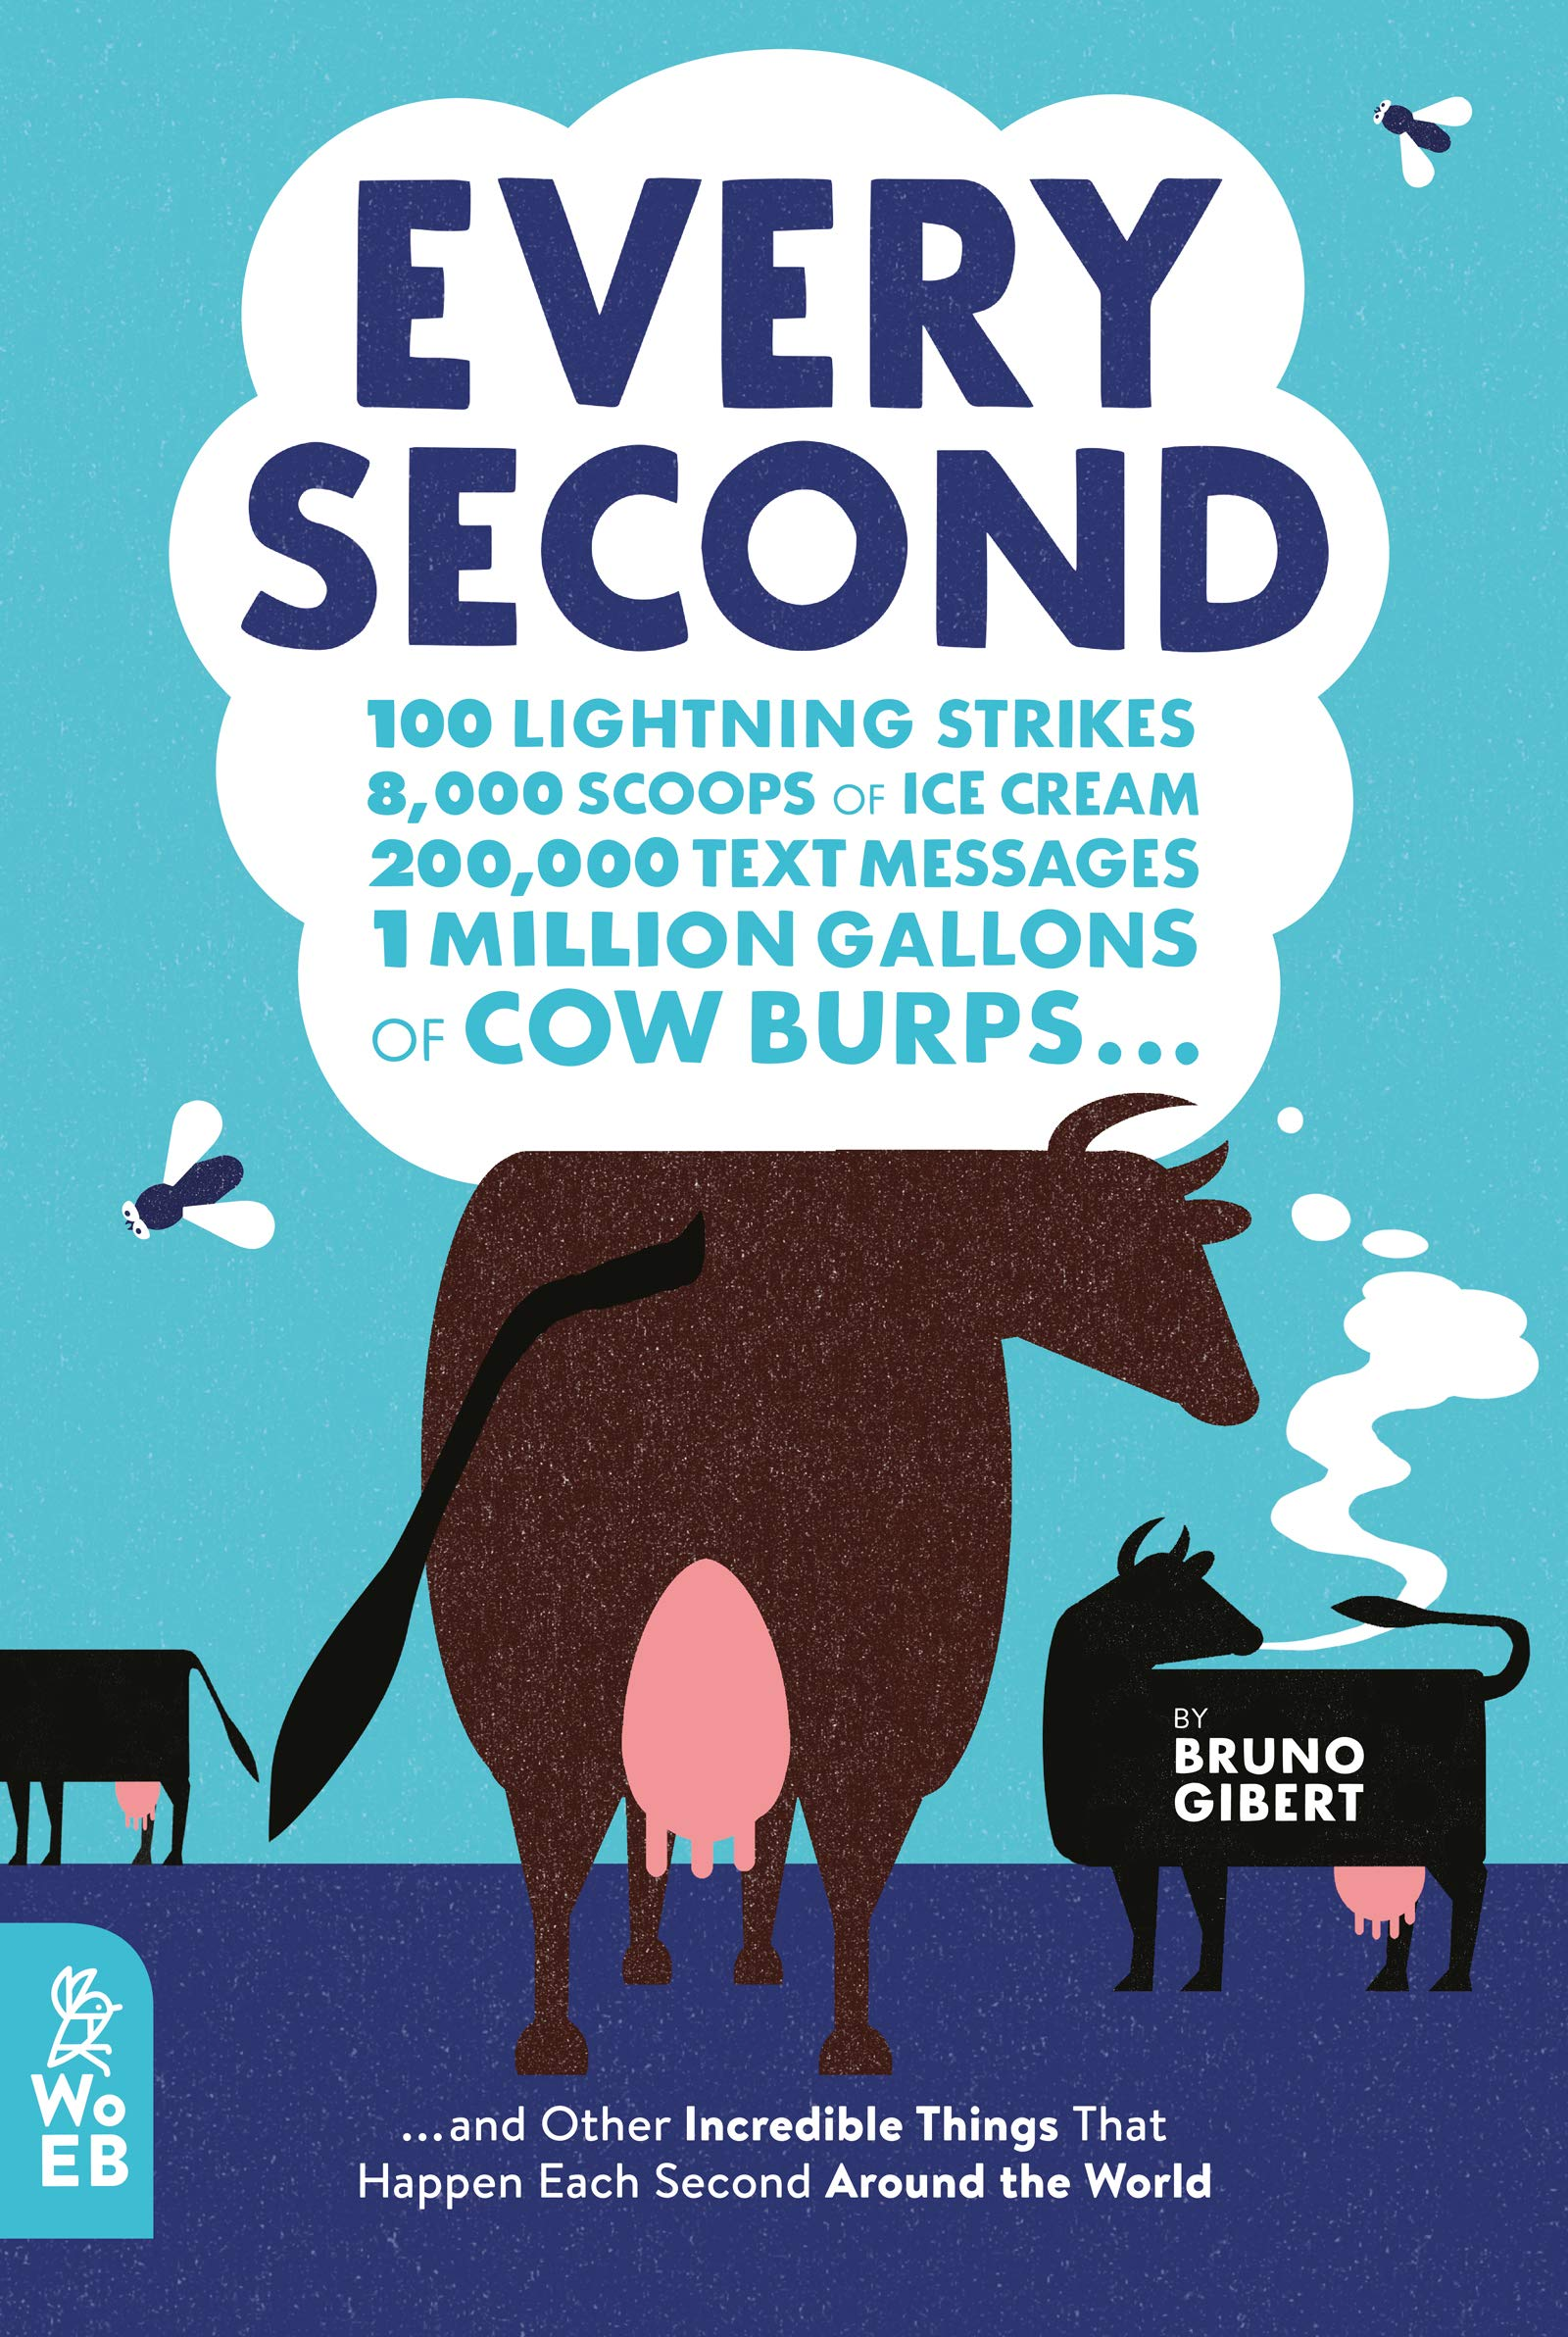 Every Second: 100 Lightning Strikes, 8,000 Scoops of Ice Cream, 200,000 Text Messages, 1 Million Gallons of Cow Burps ... and Other Incredible Things That Happen Each Second Around the World